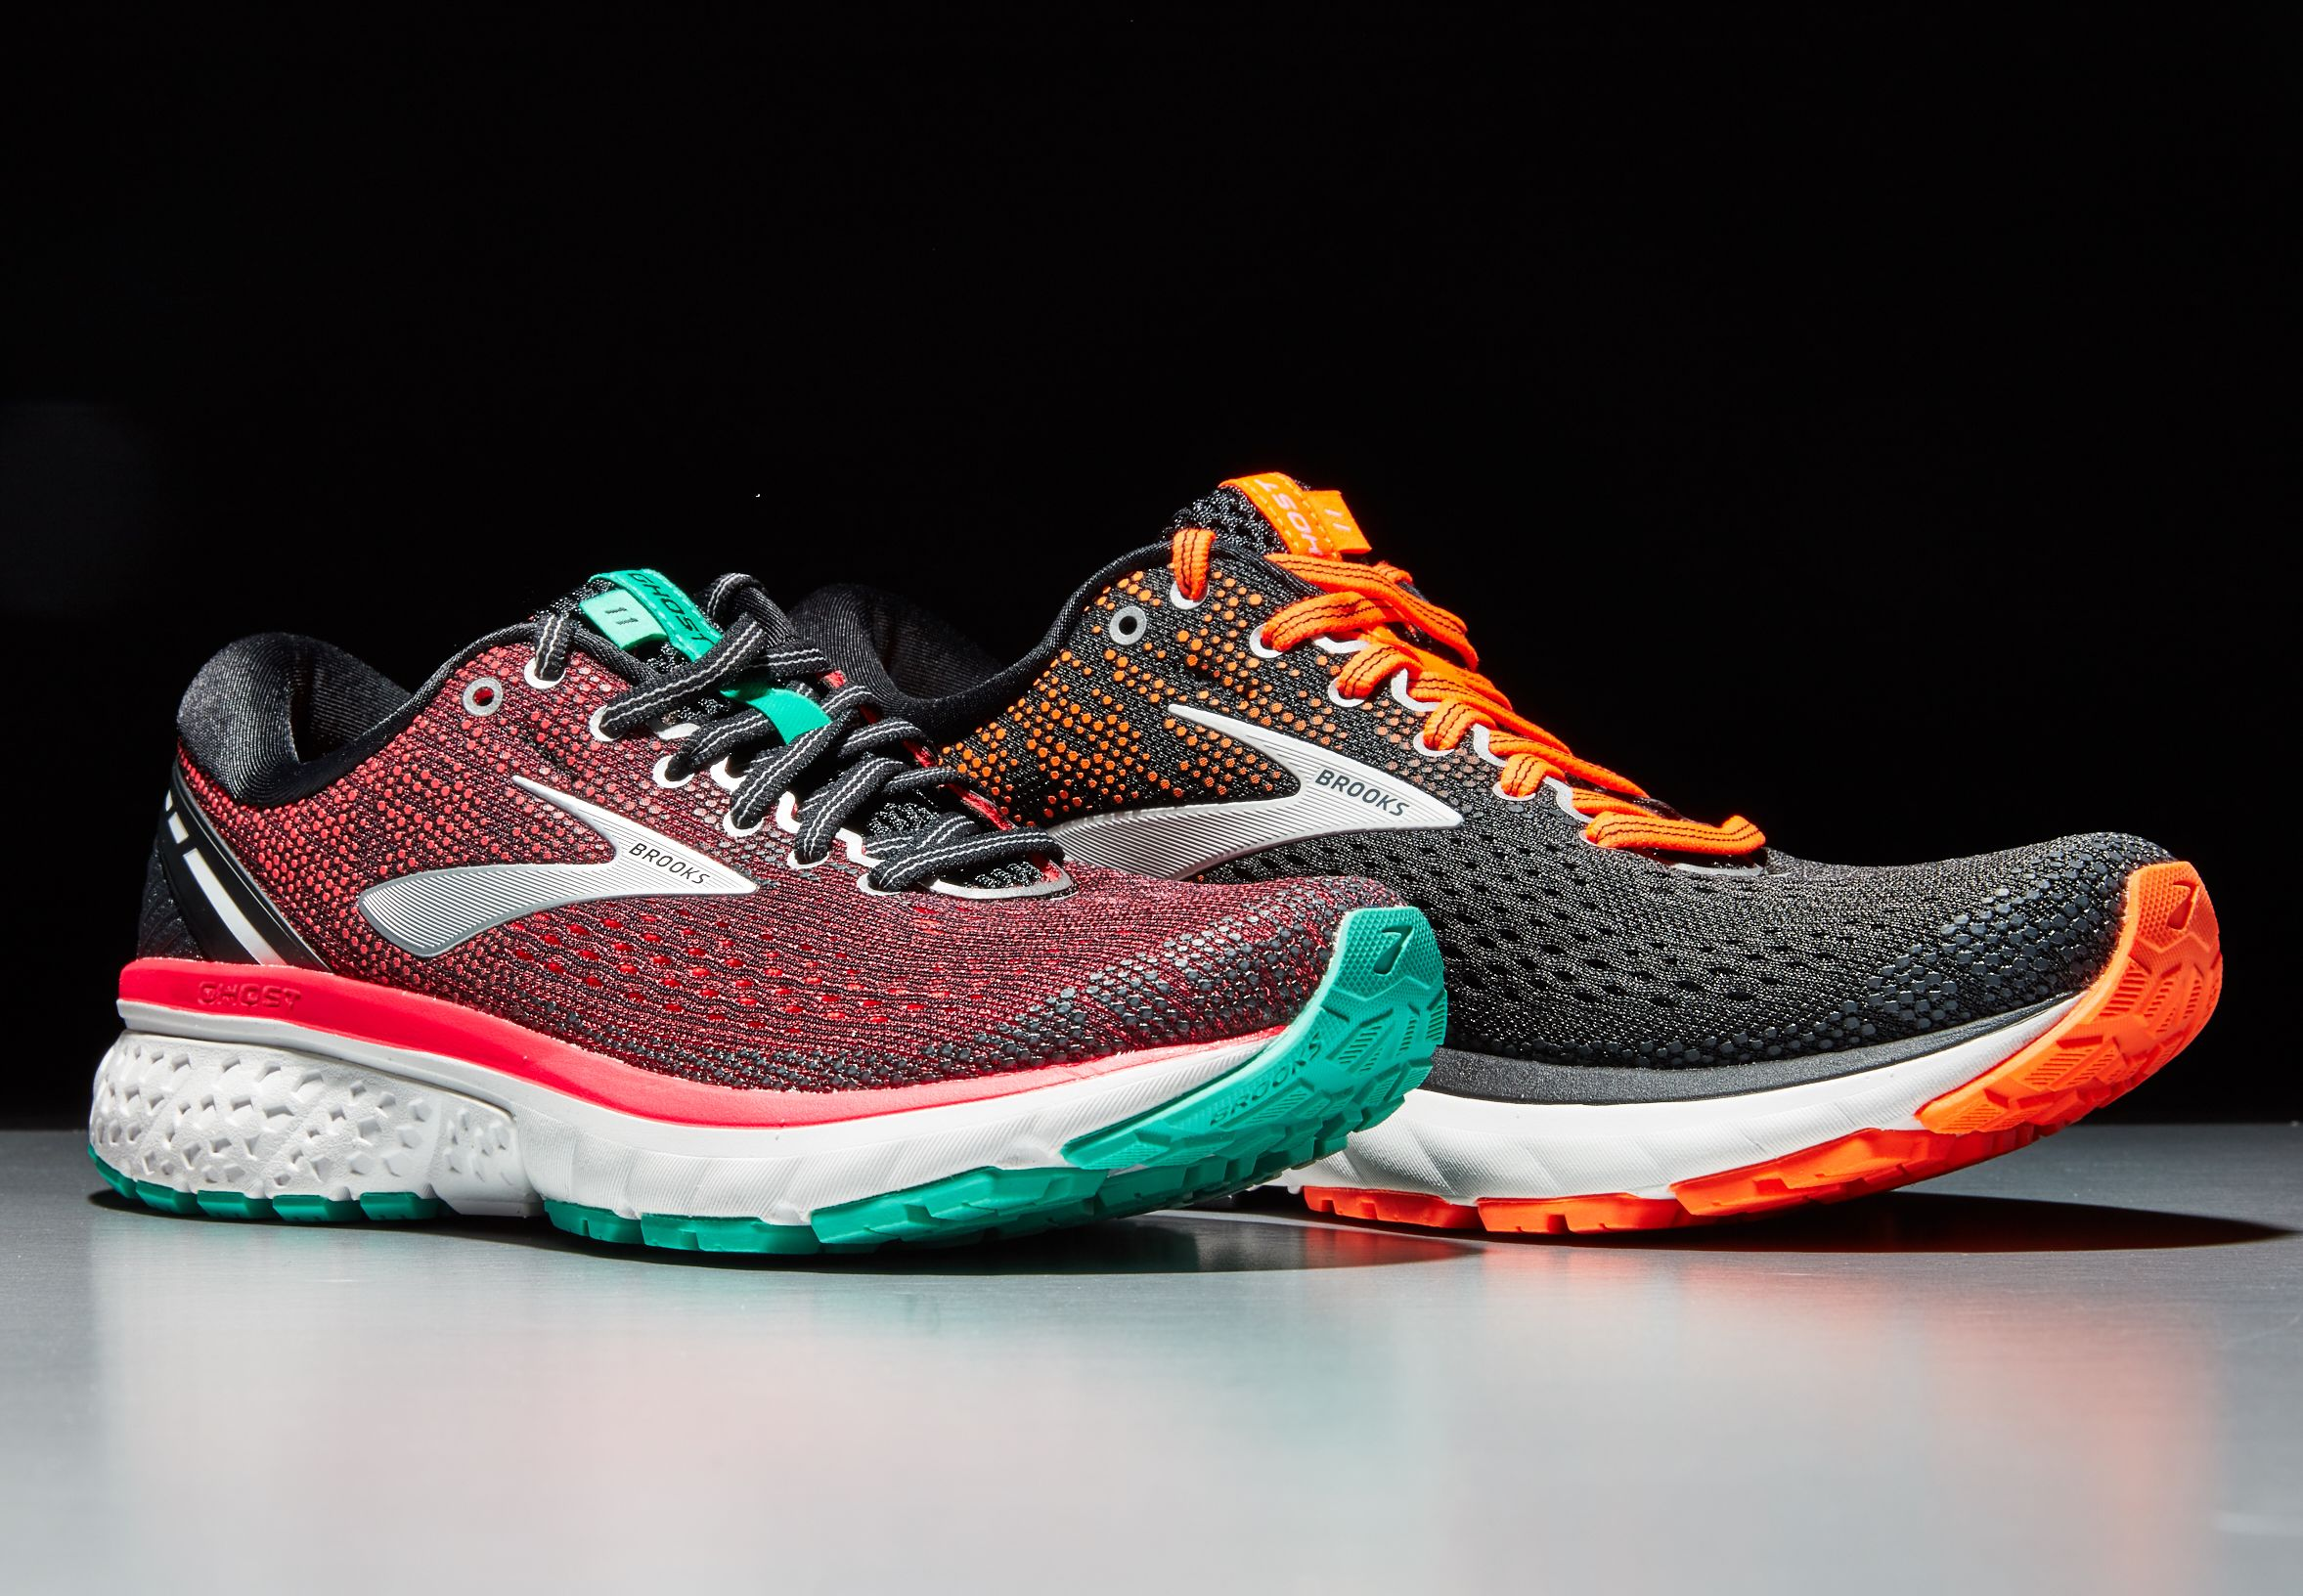 Best Selling Marathon Shoes This Fall